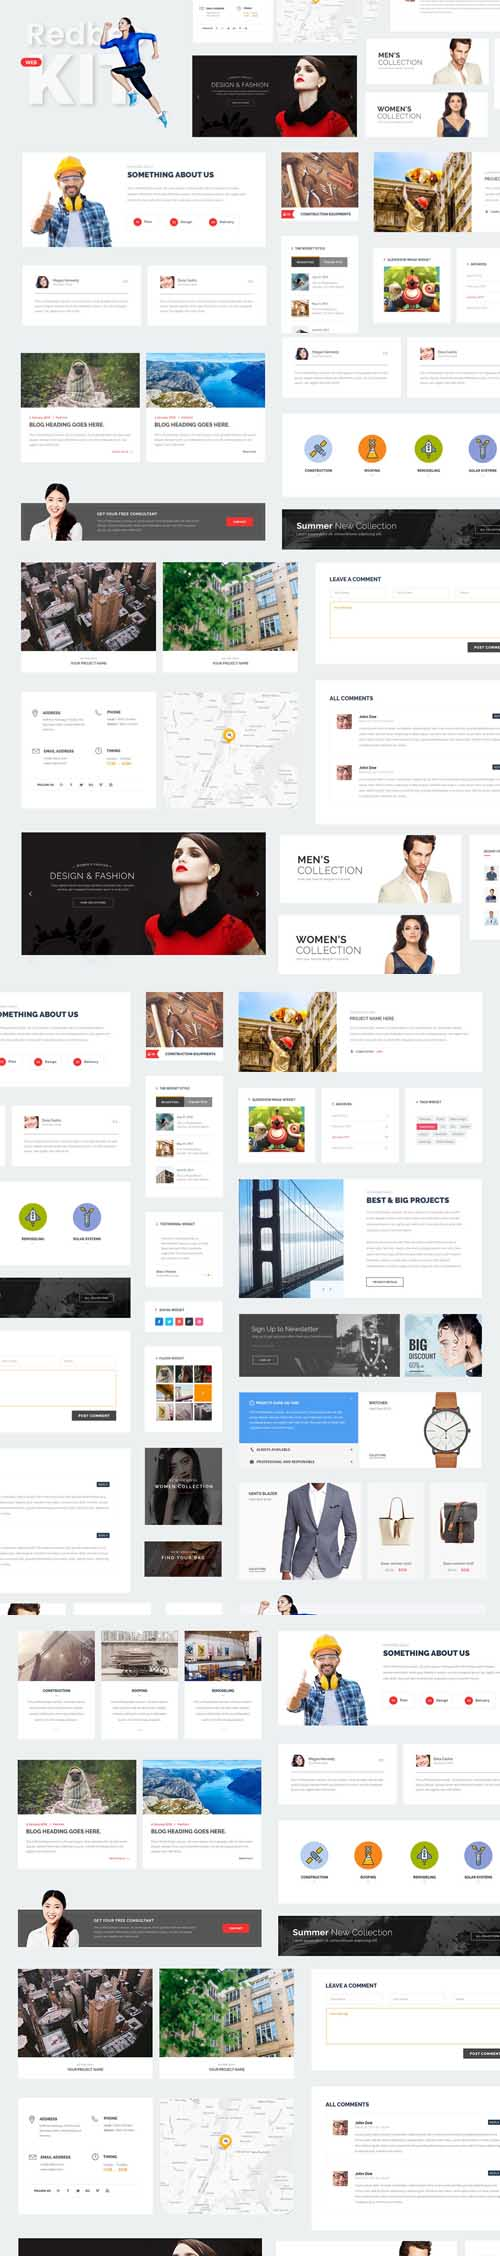 Redbee Multipurpose Web Ui Kit